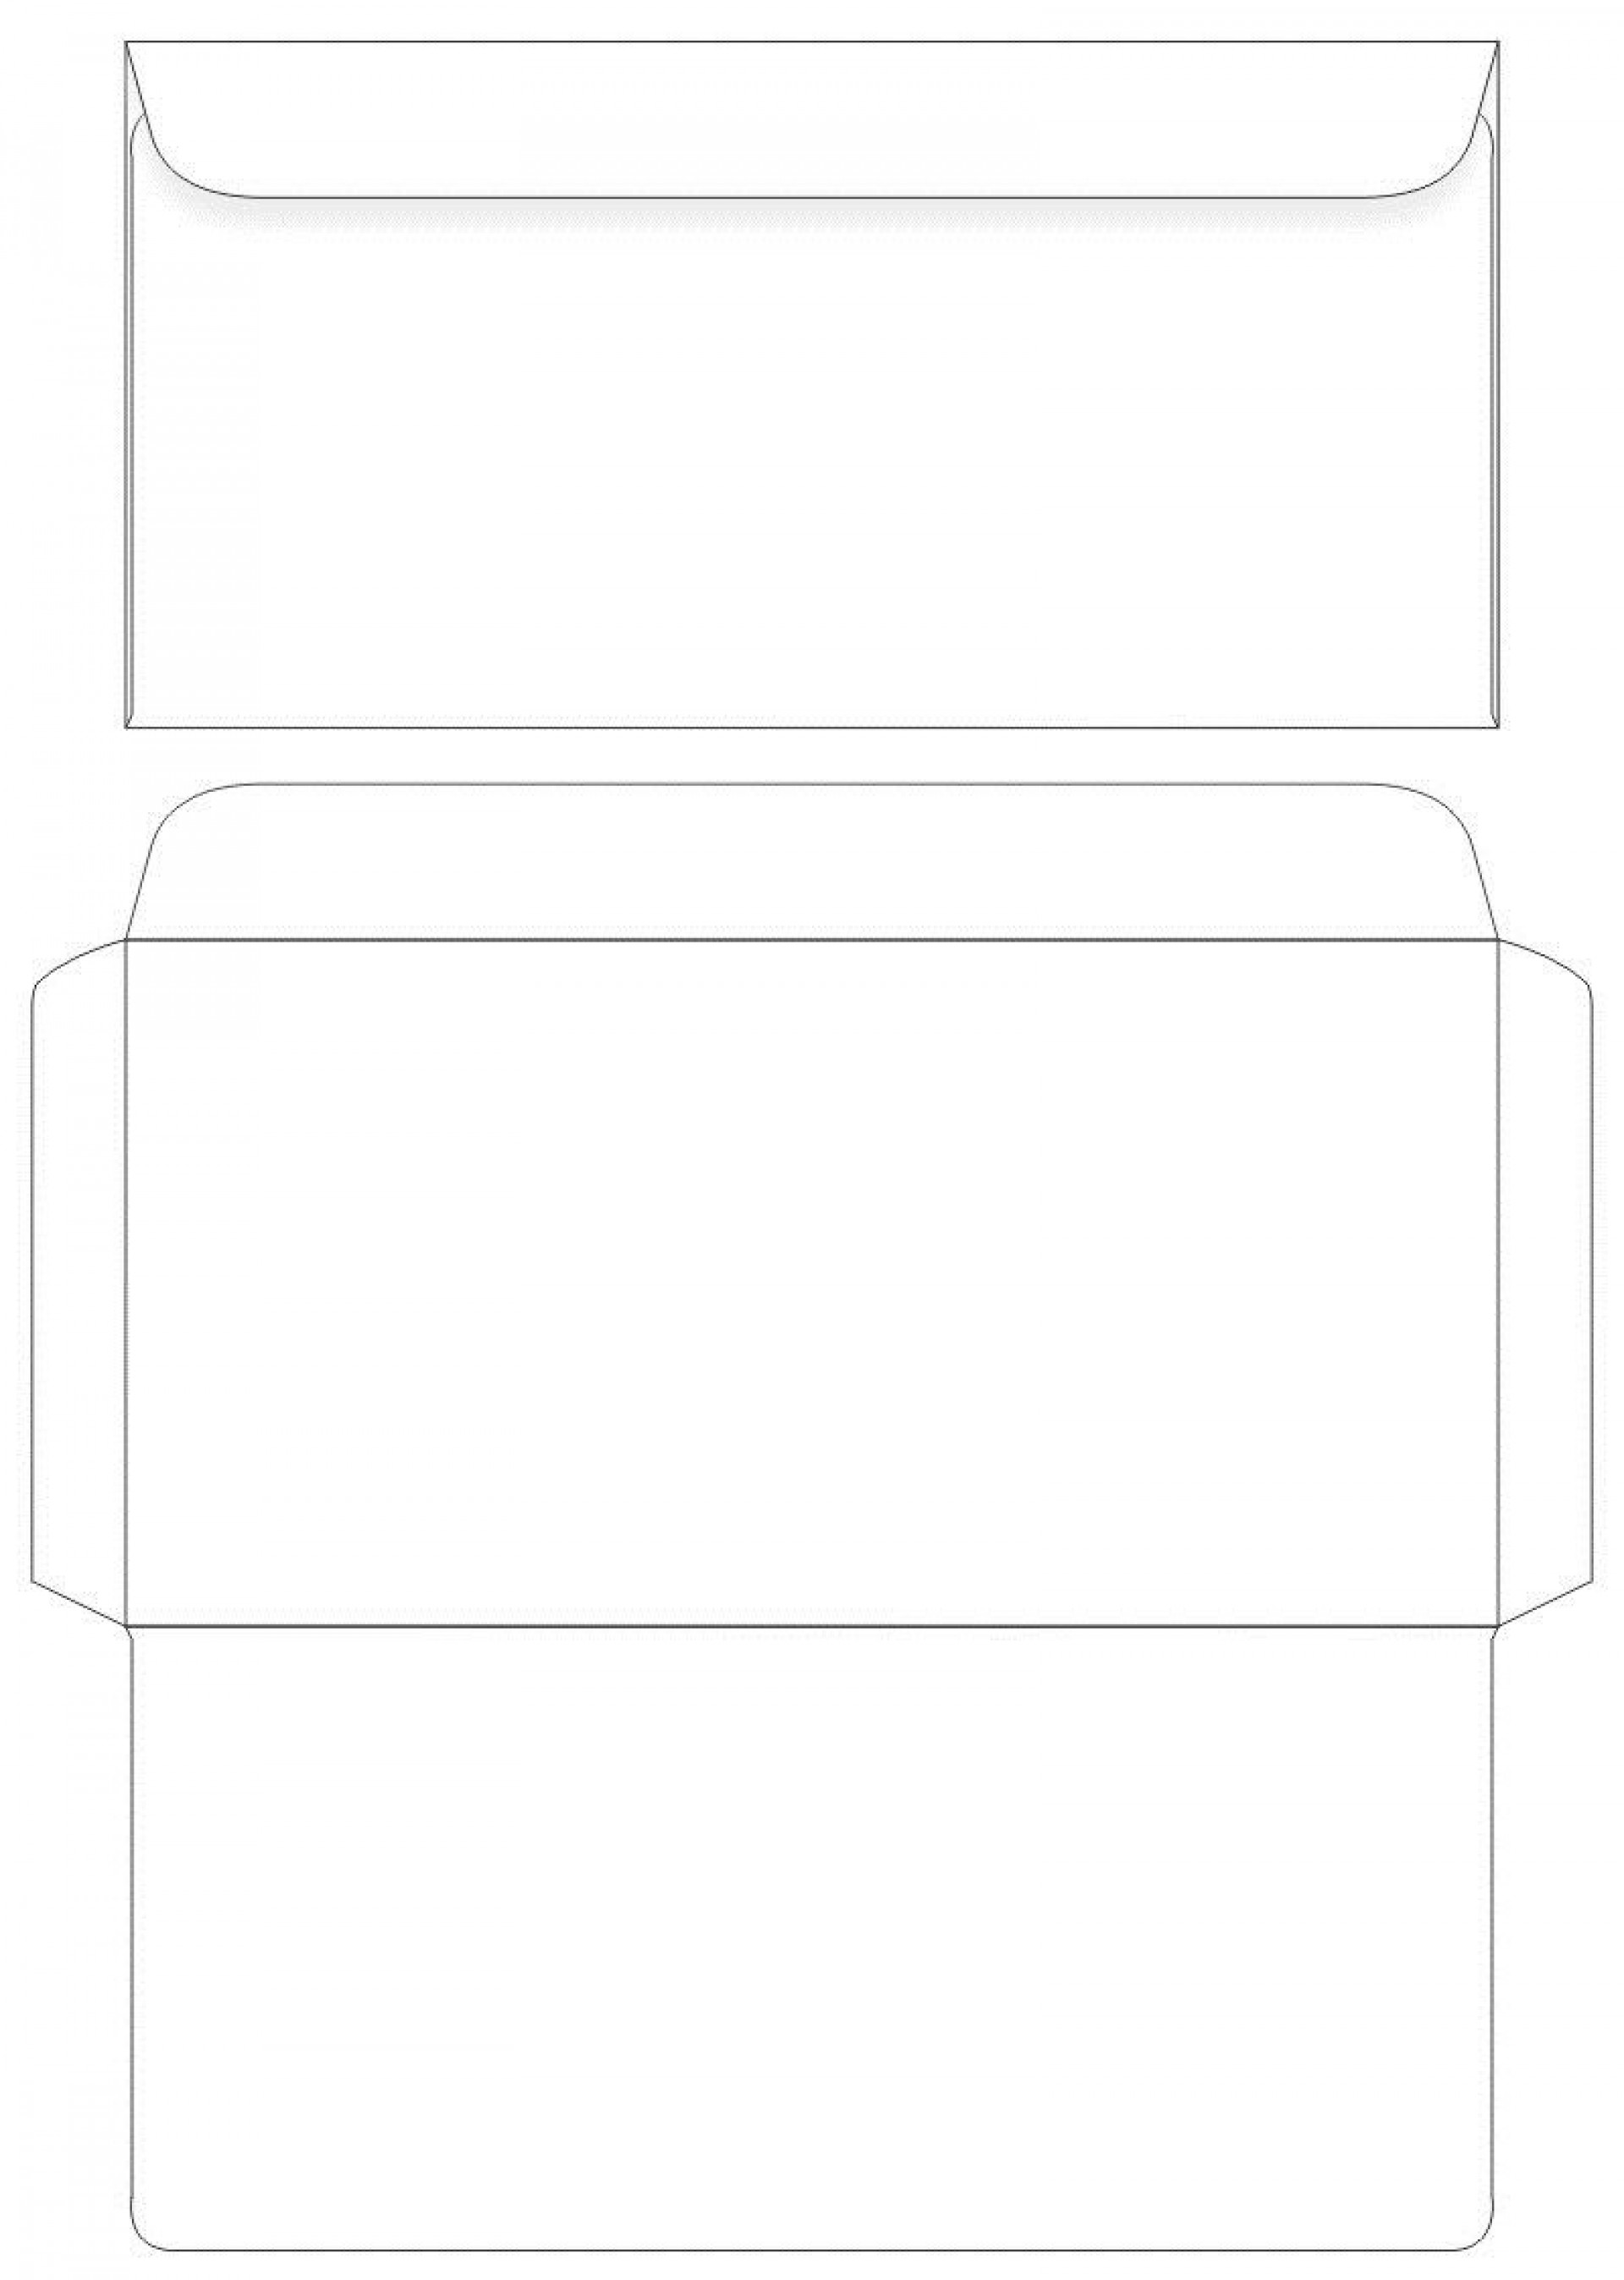 007 Unforgettable Envelope Label Template Free Inspiration  Download1920